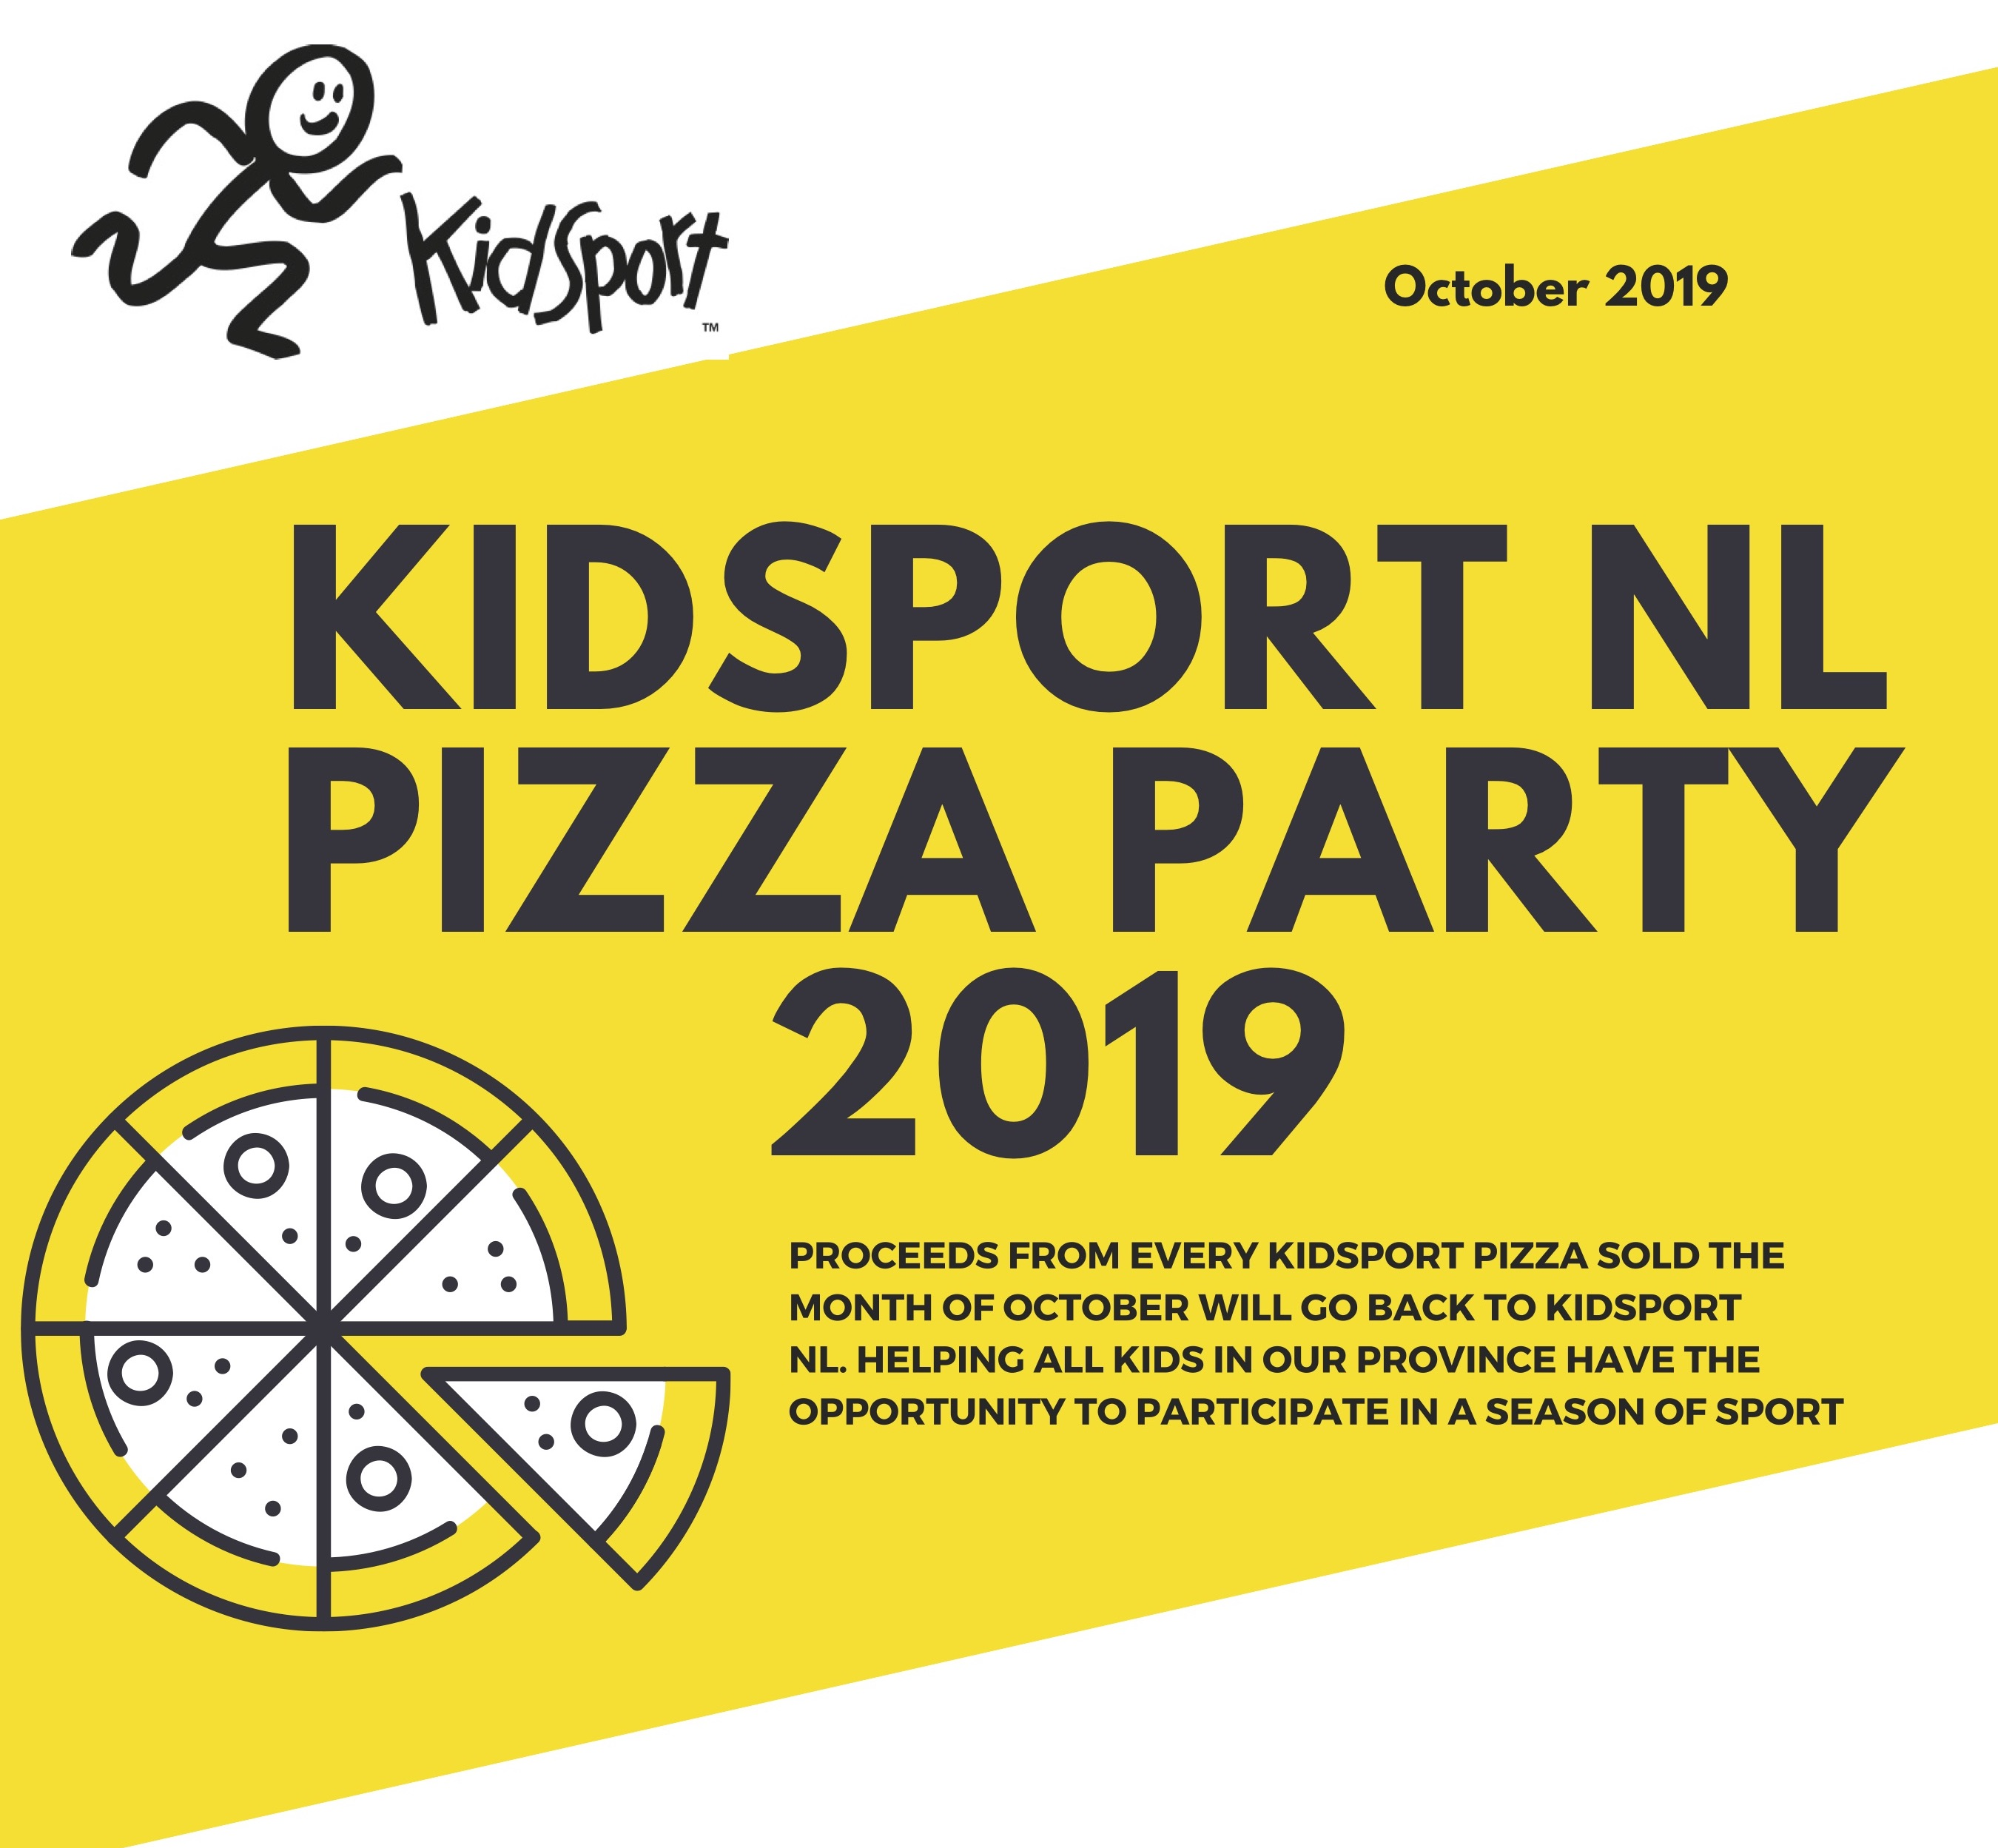 KidSport NL hosts Pizza Party 2019- THANK YOU!